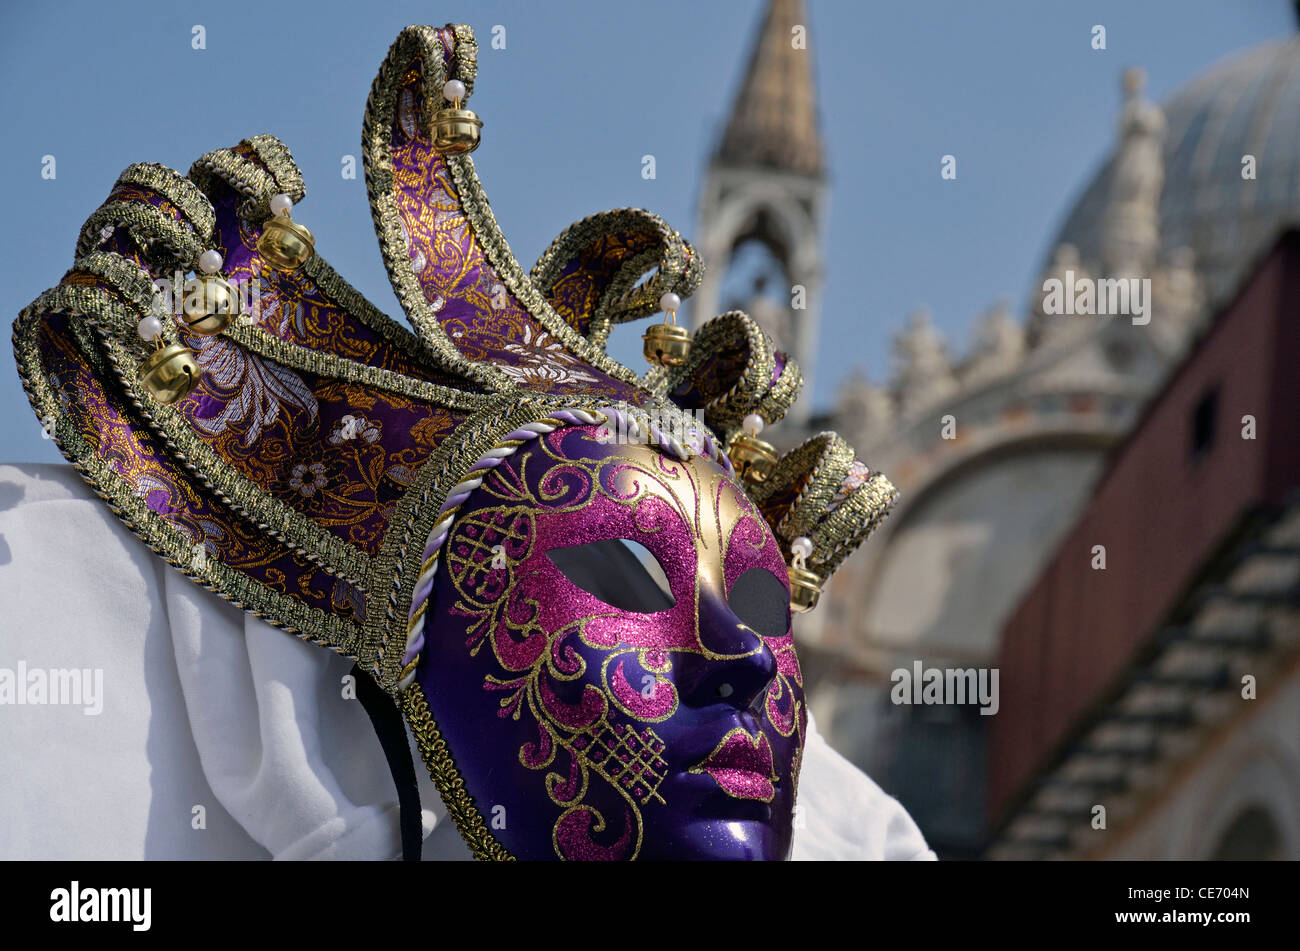 Traditional Venetian mask, Italy - Stock Image